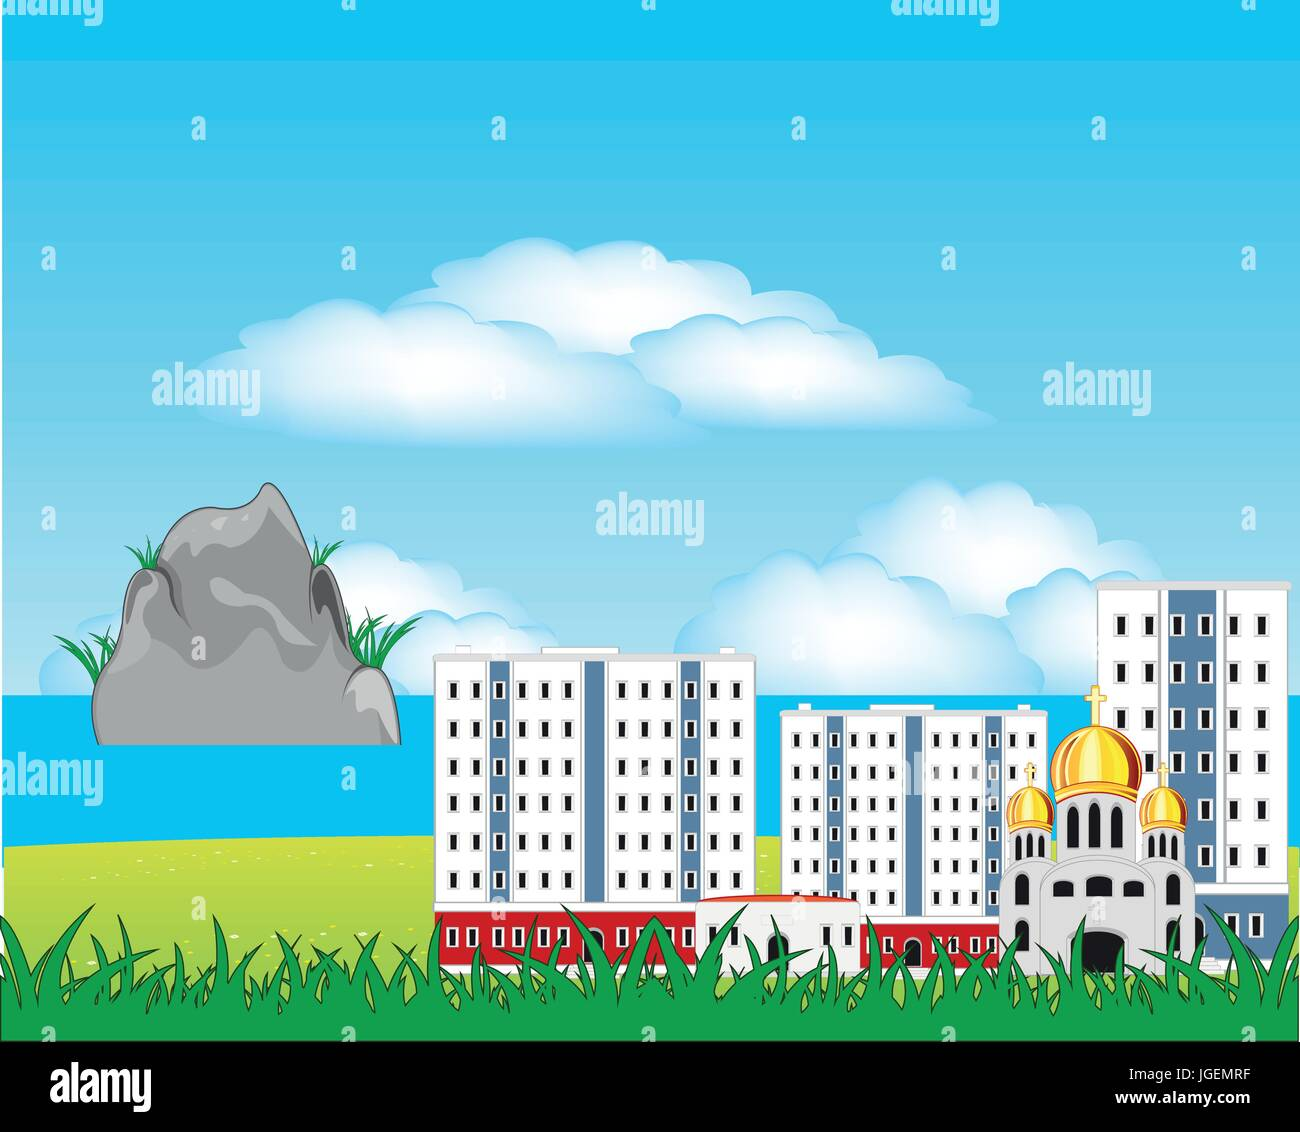 City beside epidemic deathes - Stock Vector